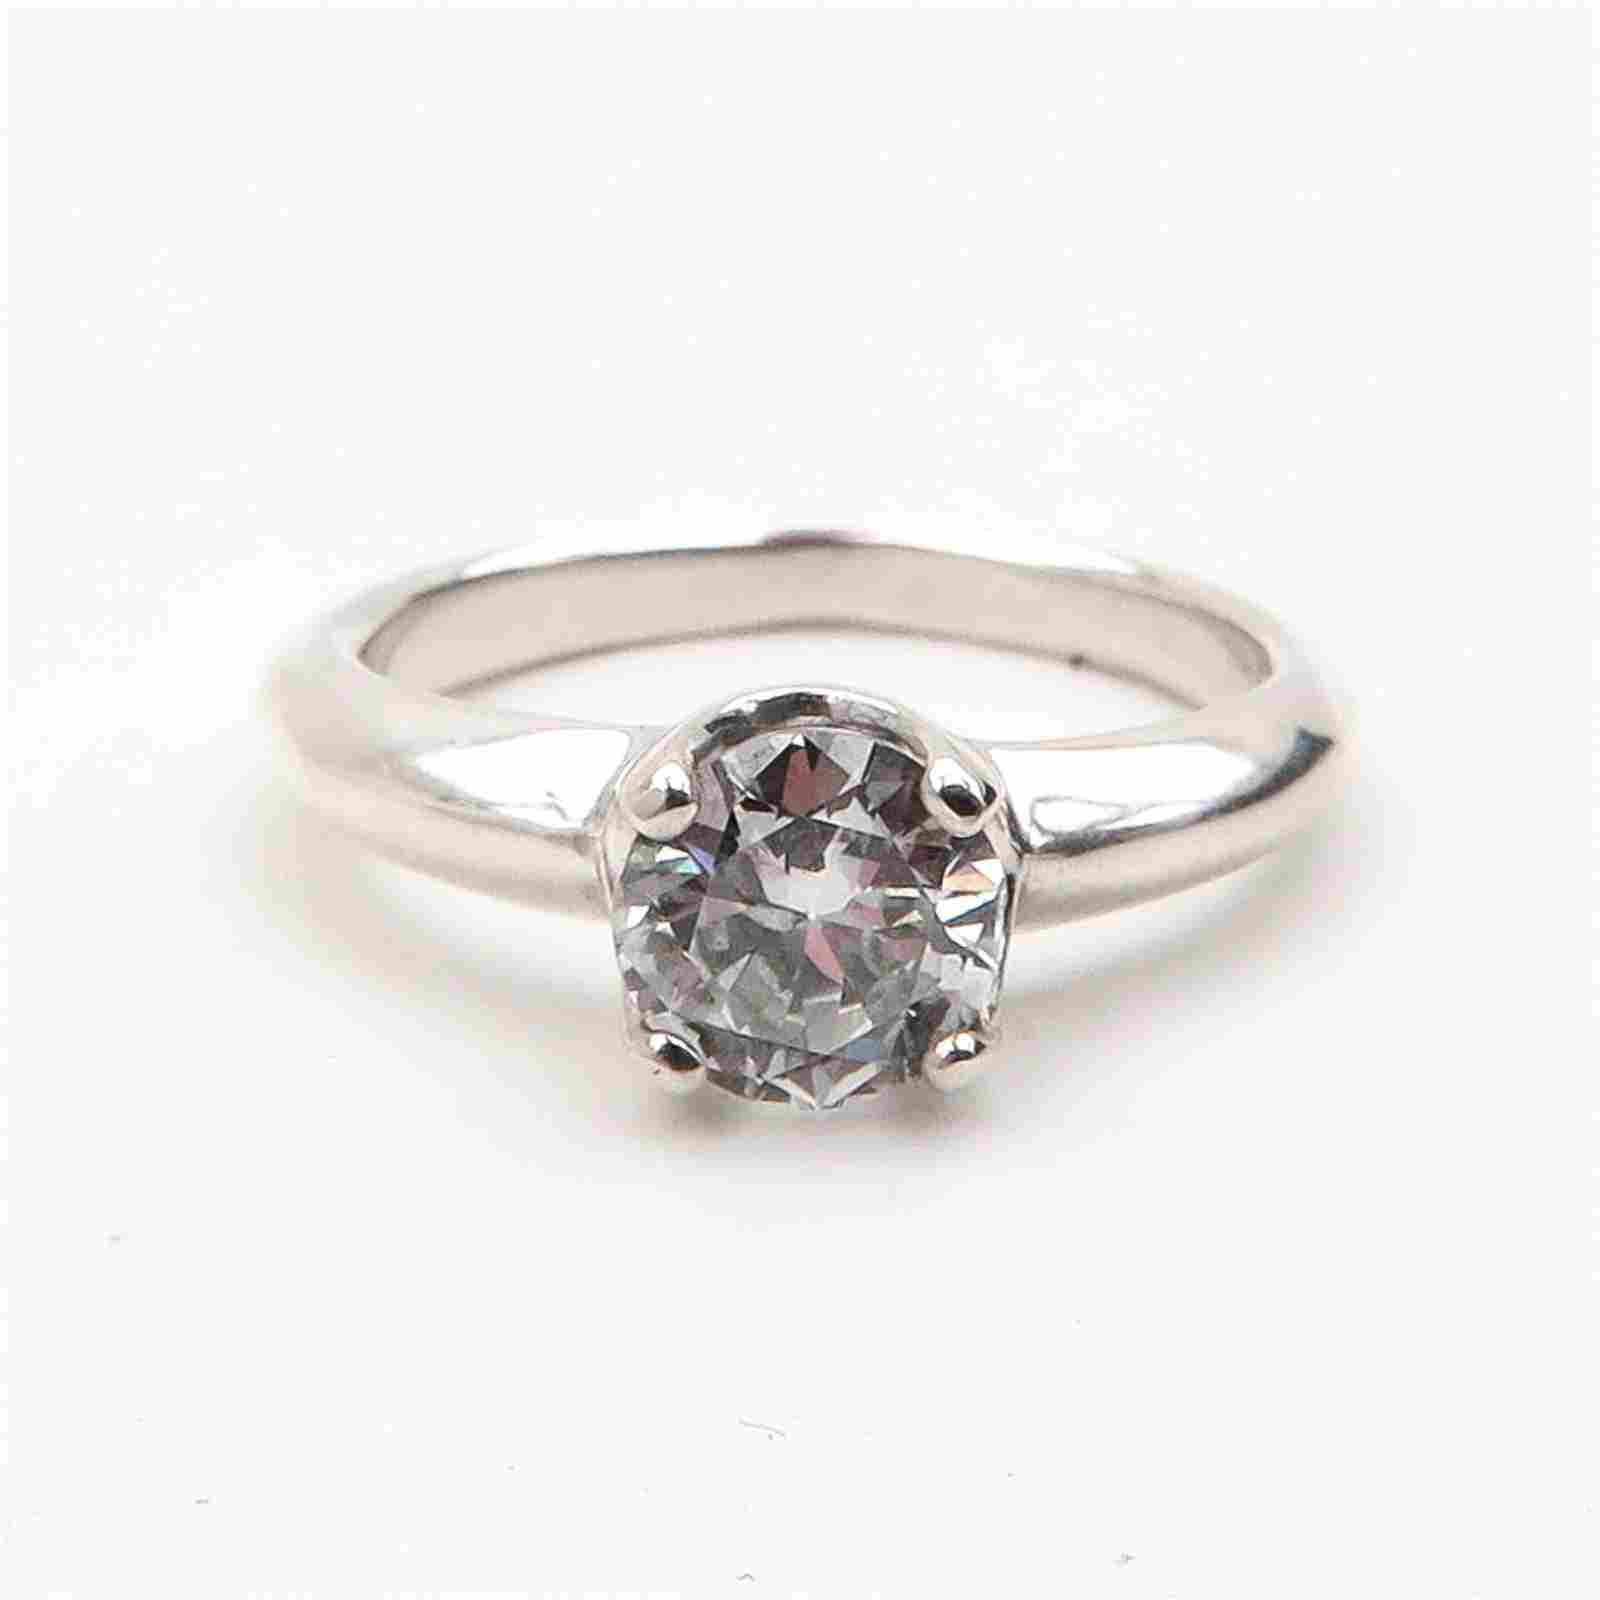 A Ladies Diamond Solitaire Ring 0.93 Carat